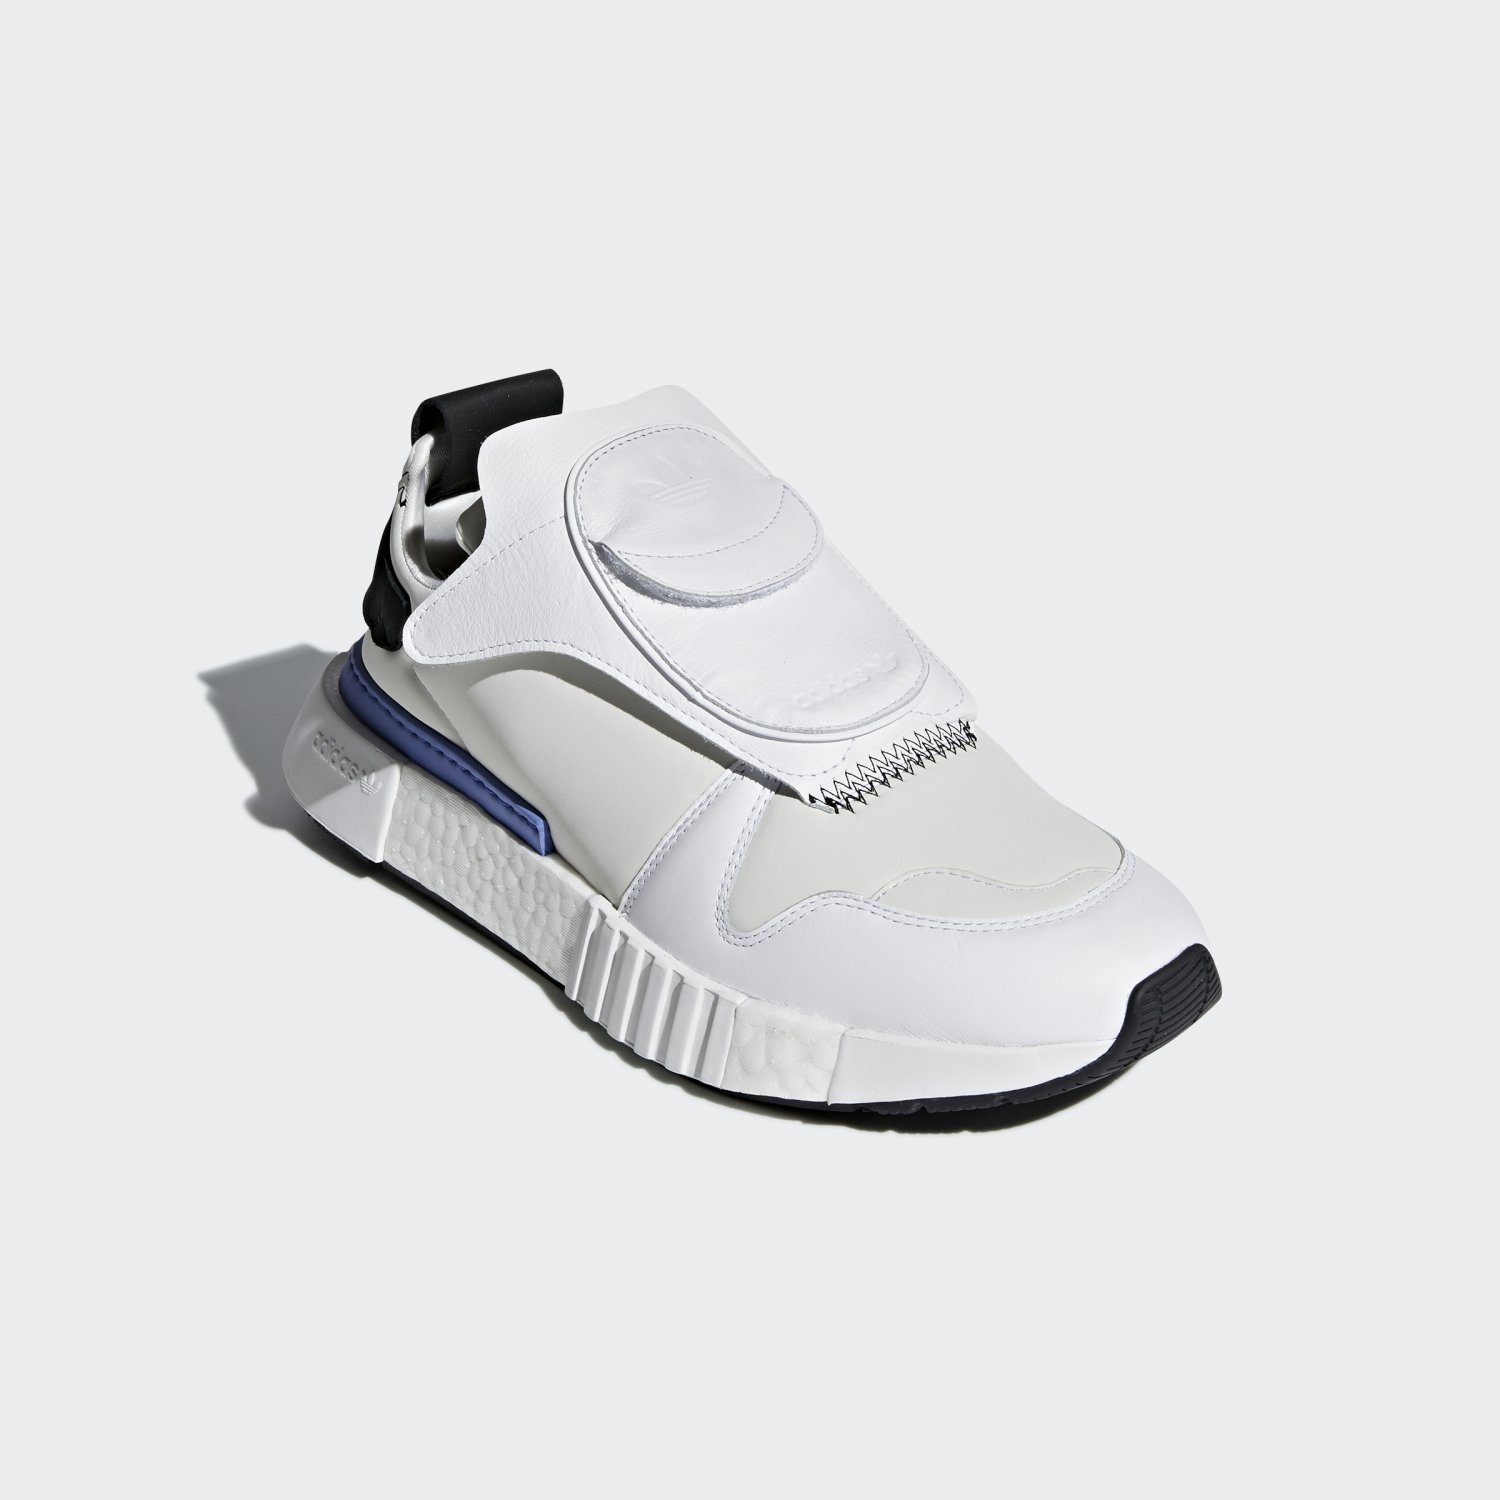 adidas-future-pacer-aq0907-release-20180714